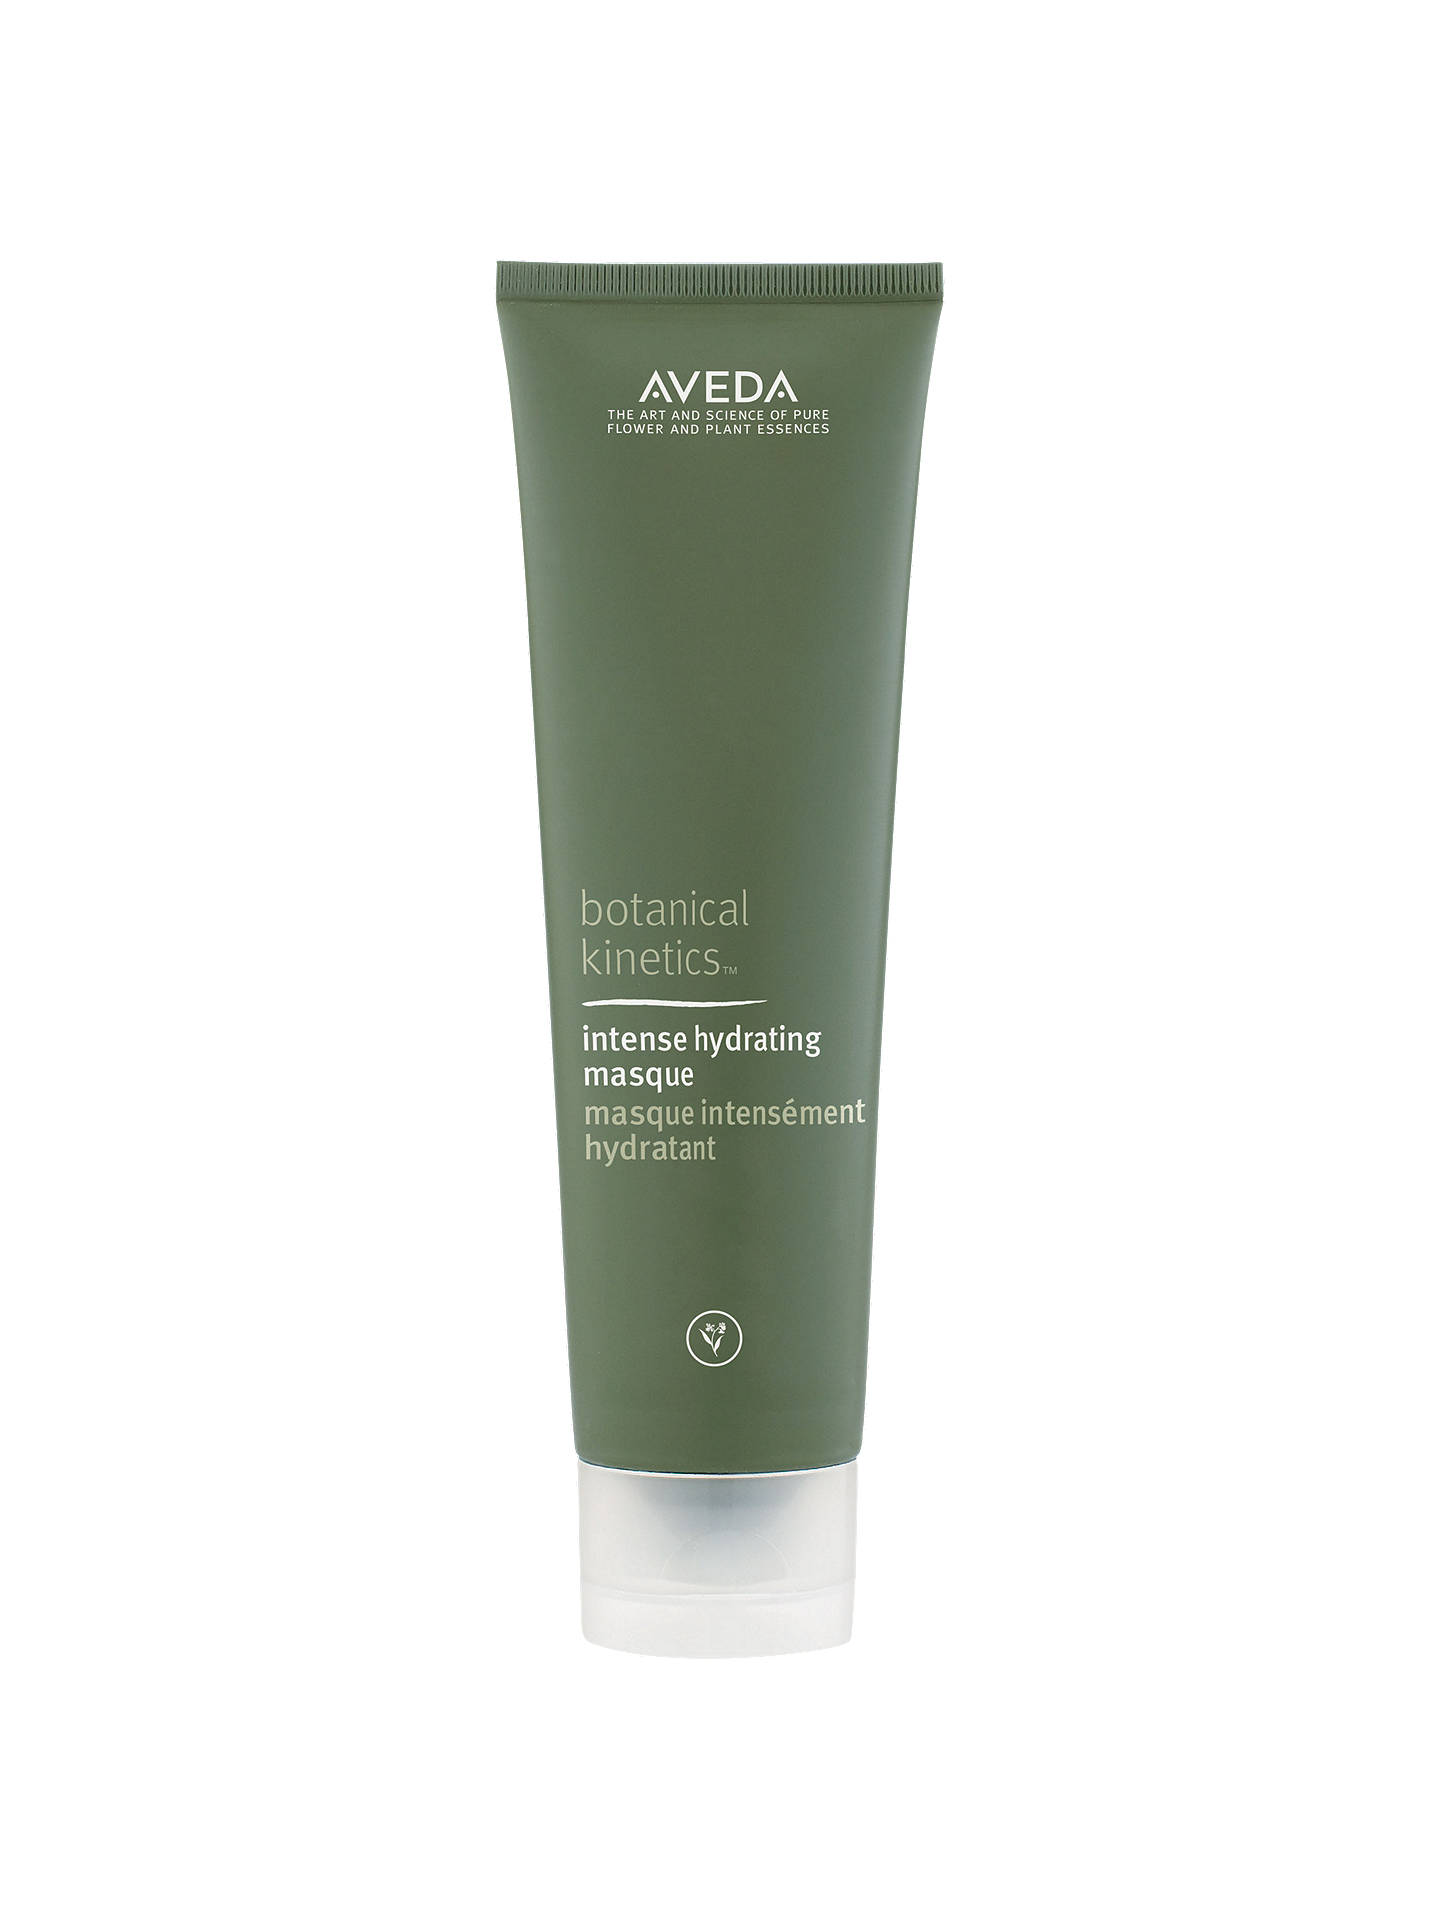 BuyAVEDA Botanical Kinetics™ Intense Hydrating Masque, 150ml Online at johnlewis.com